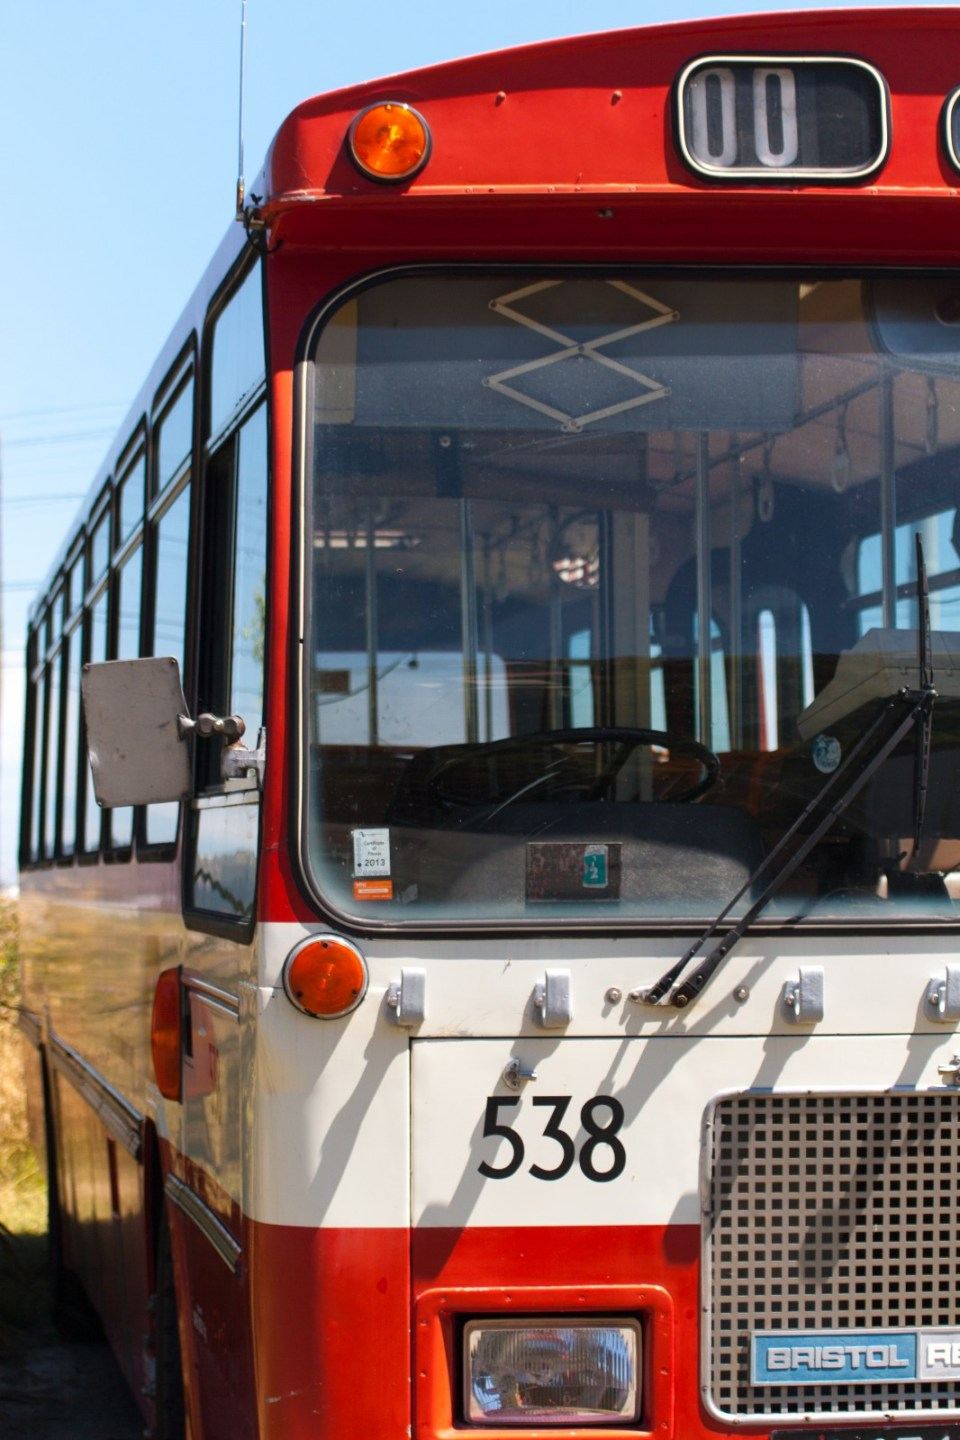 old vintage red and white bus number 538